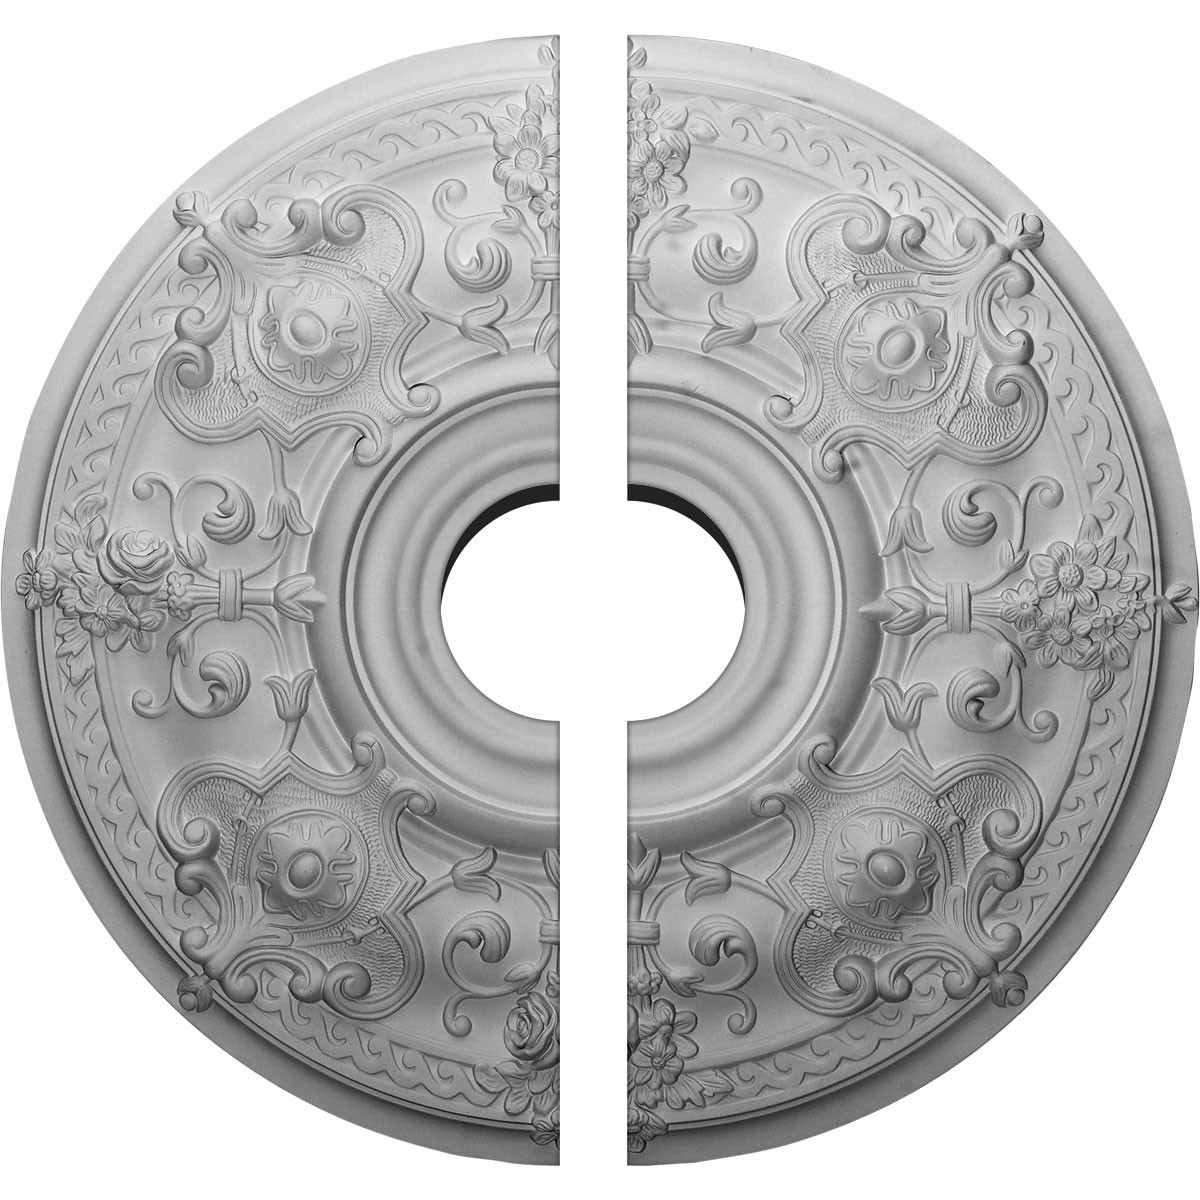 """EM-CM28OS2-06000 - 28 1/8""""OD x 6""""ID x 1 3/4""""P Oslo Ceiling Medallion, Two Piece (Fits Canopies up to 10 1/2"""")"""